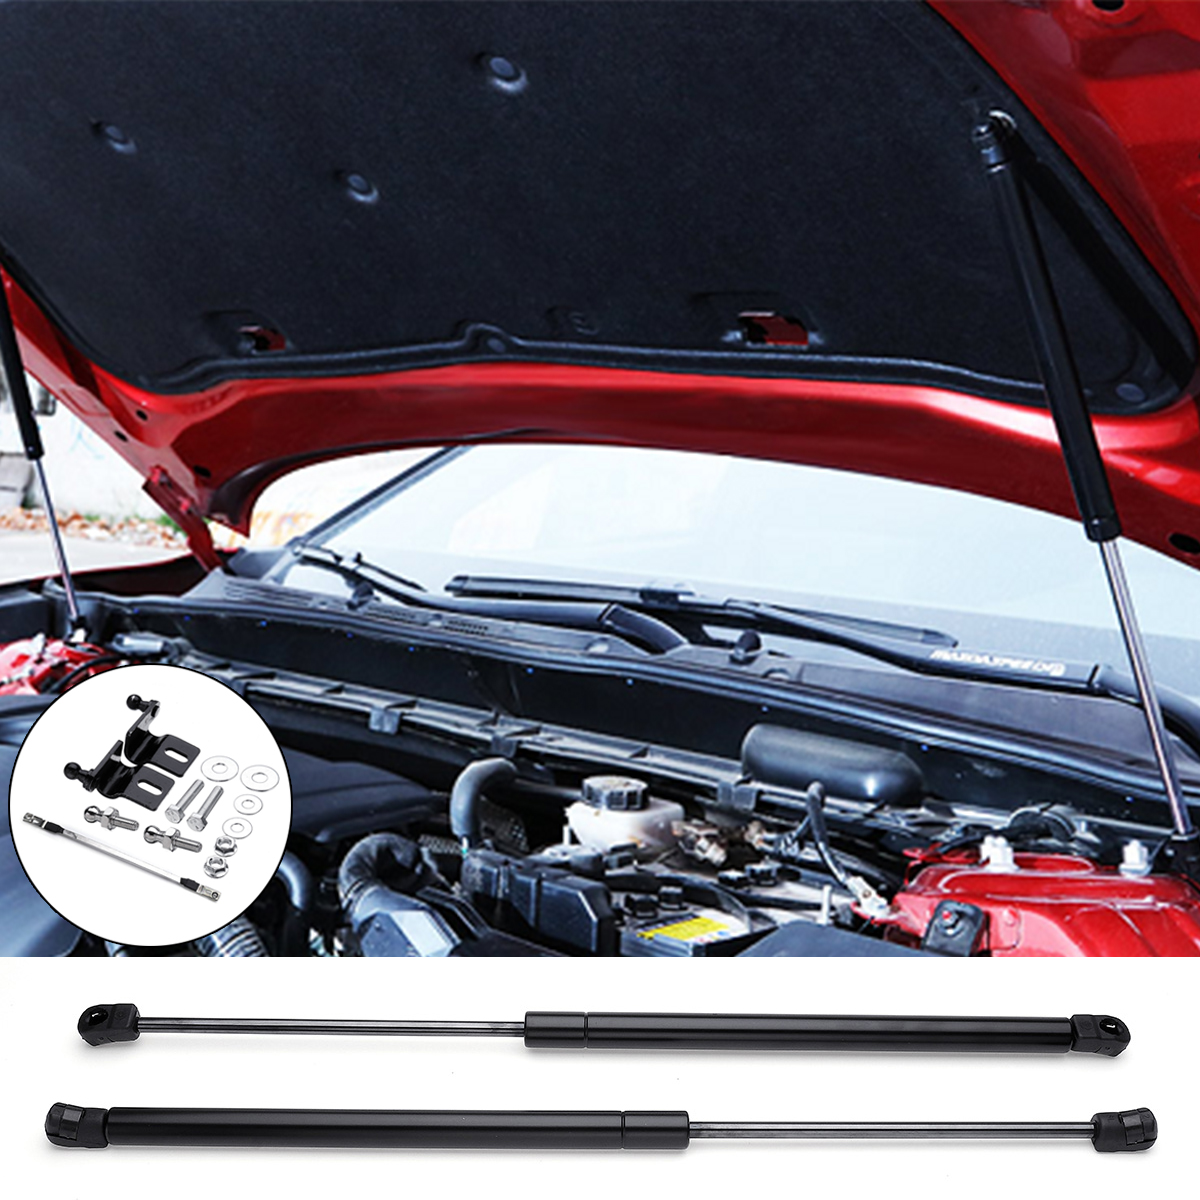 Sachs SG159005 Lift Support